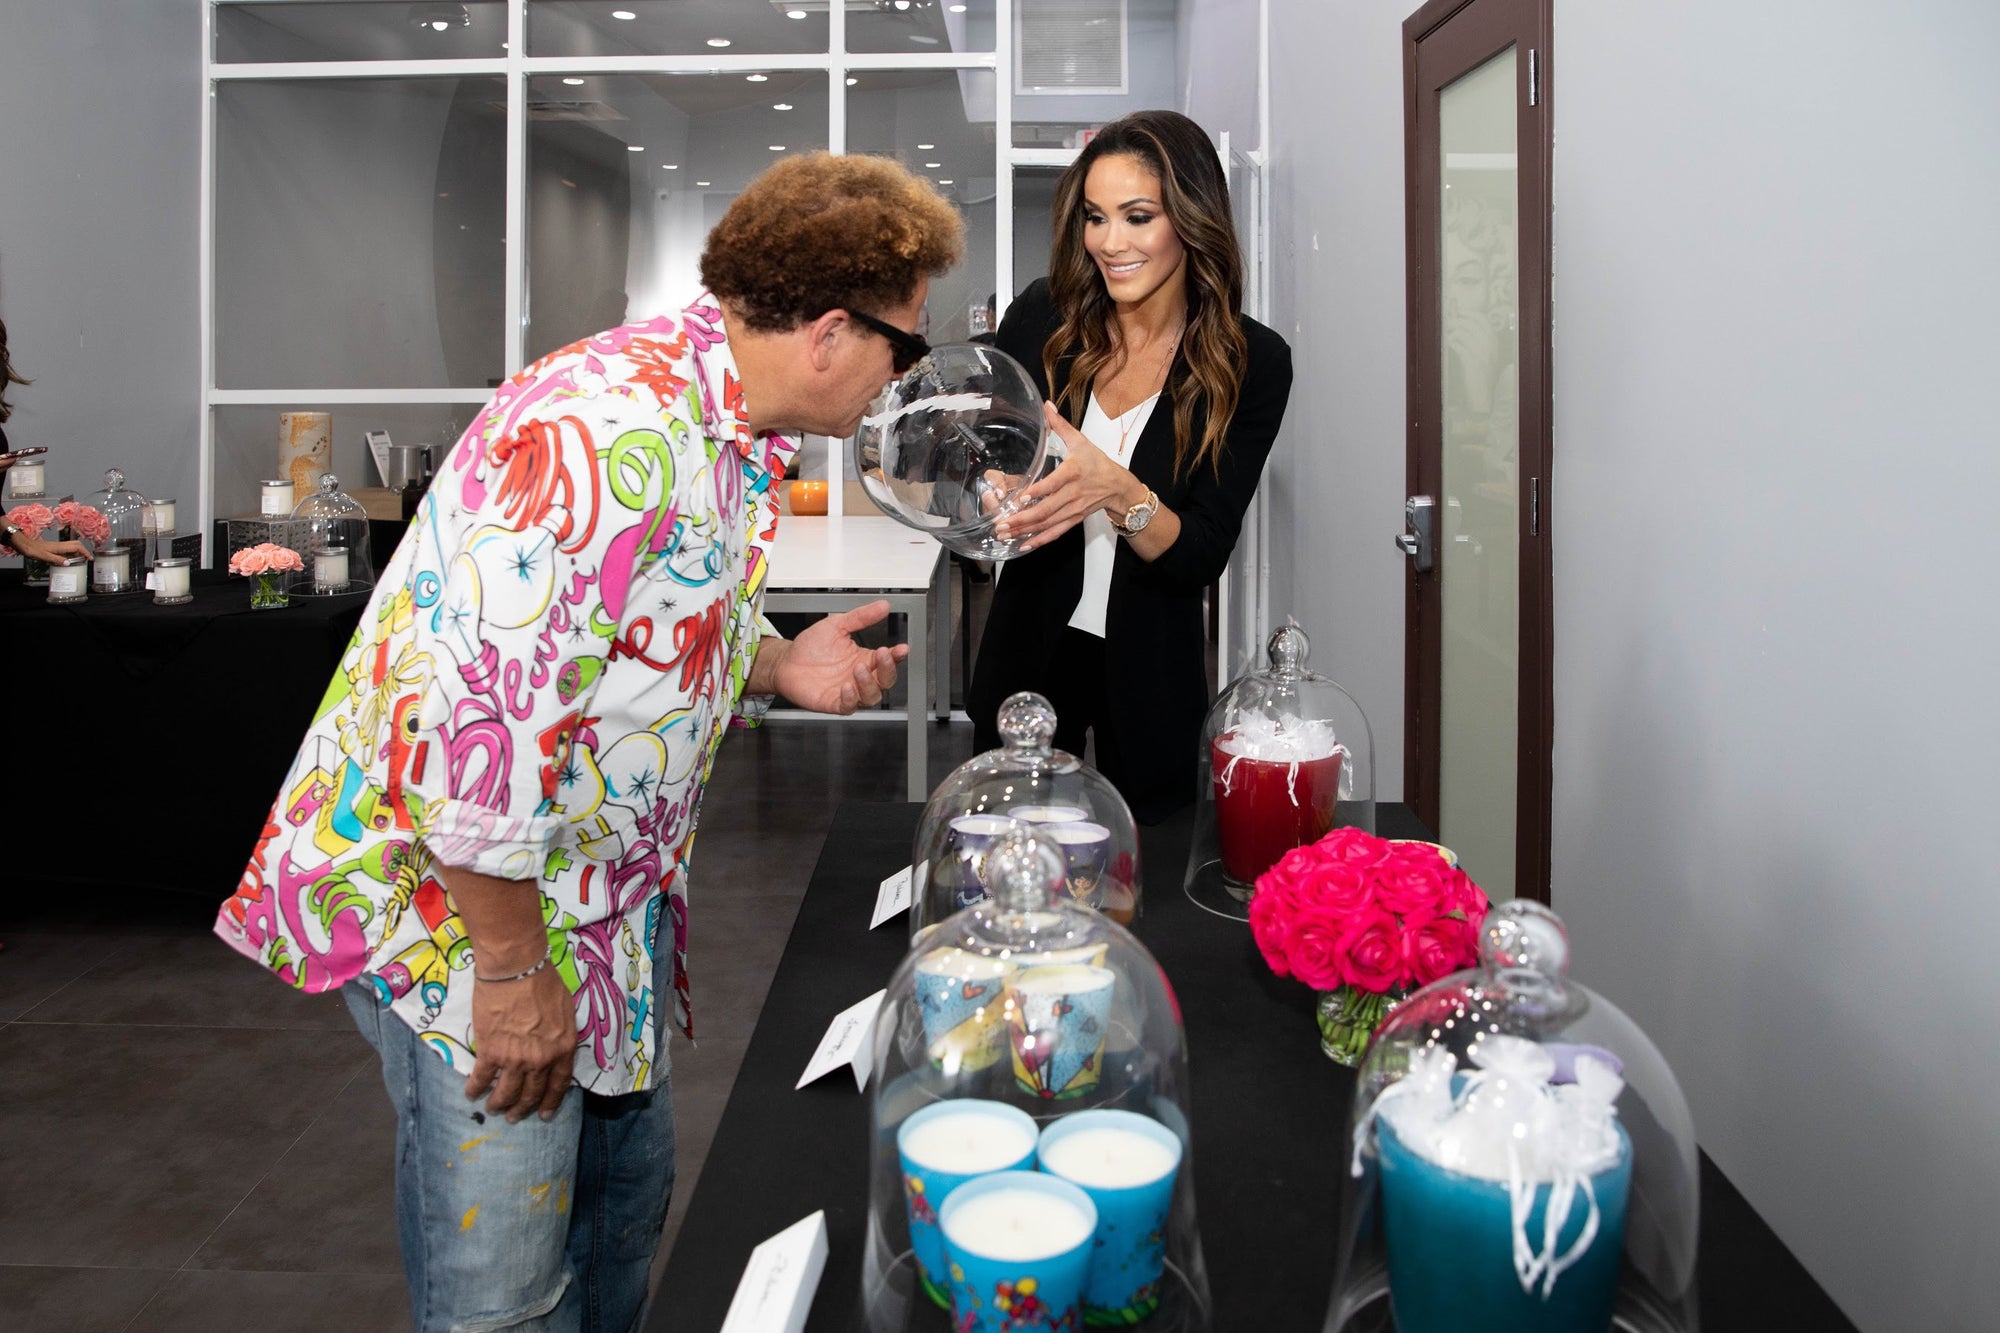 Introducing the Romero Britto® Home Fragrance Collection